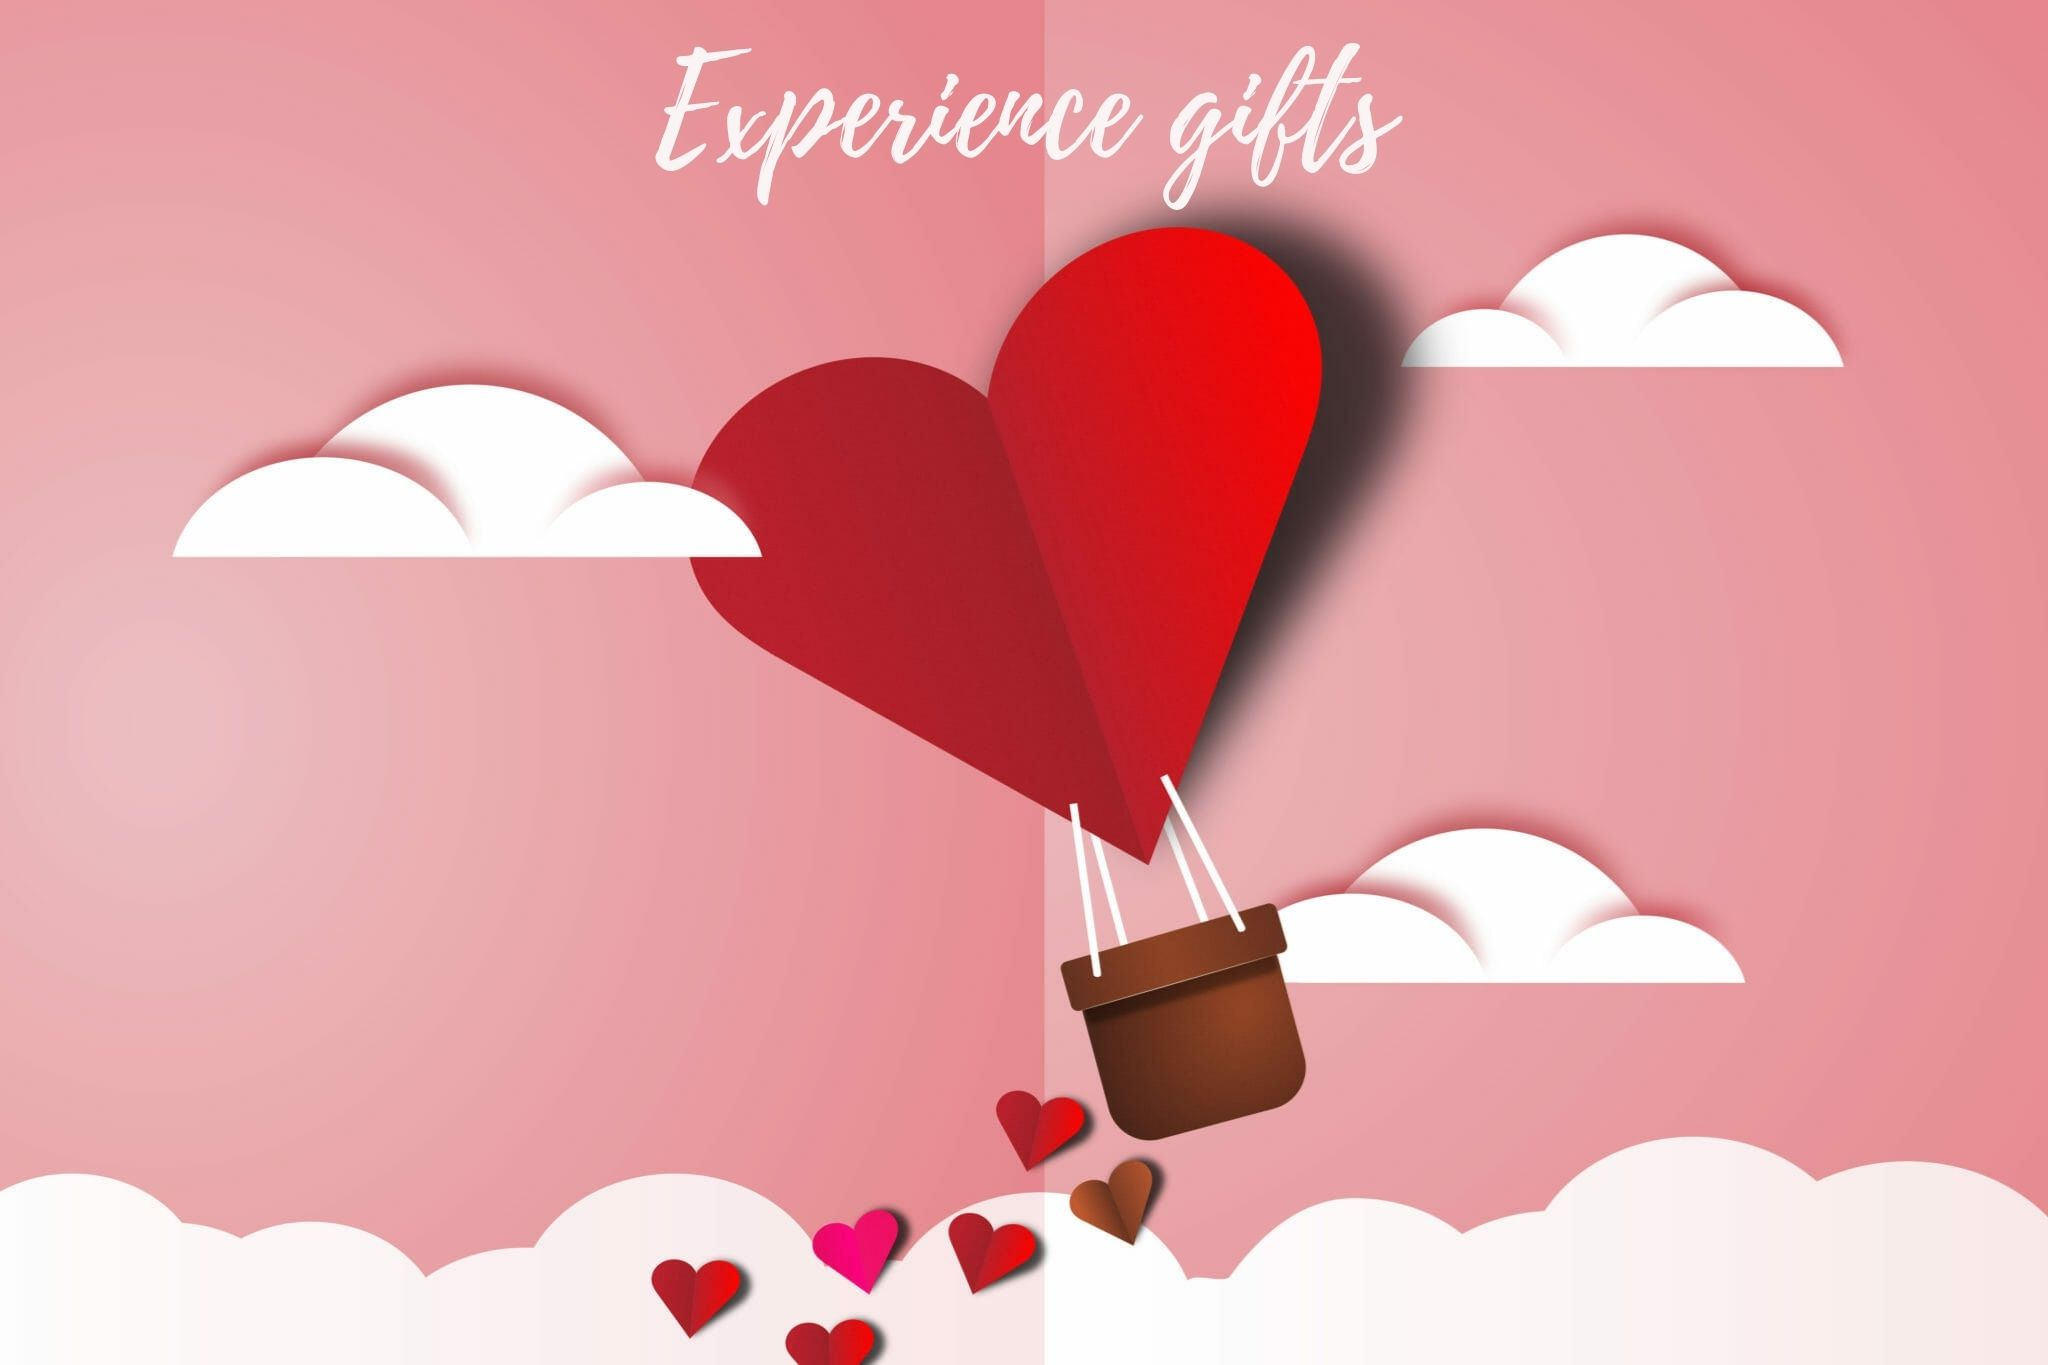 "Valentine's Day retail ideas: Promote Valentine's Day ""experiences gifts"""